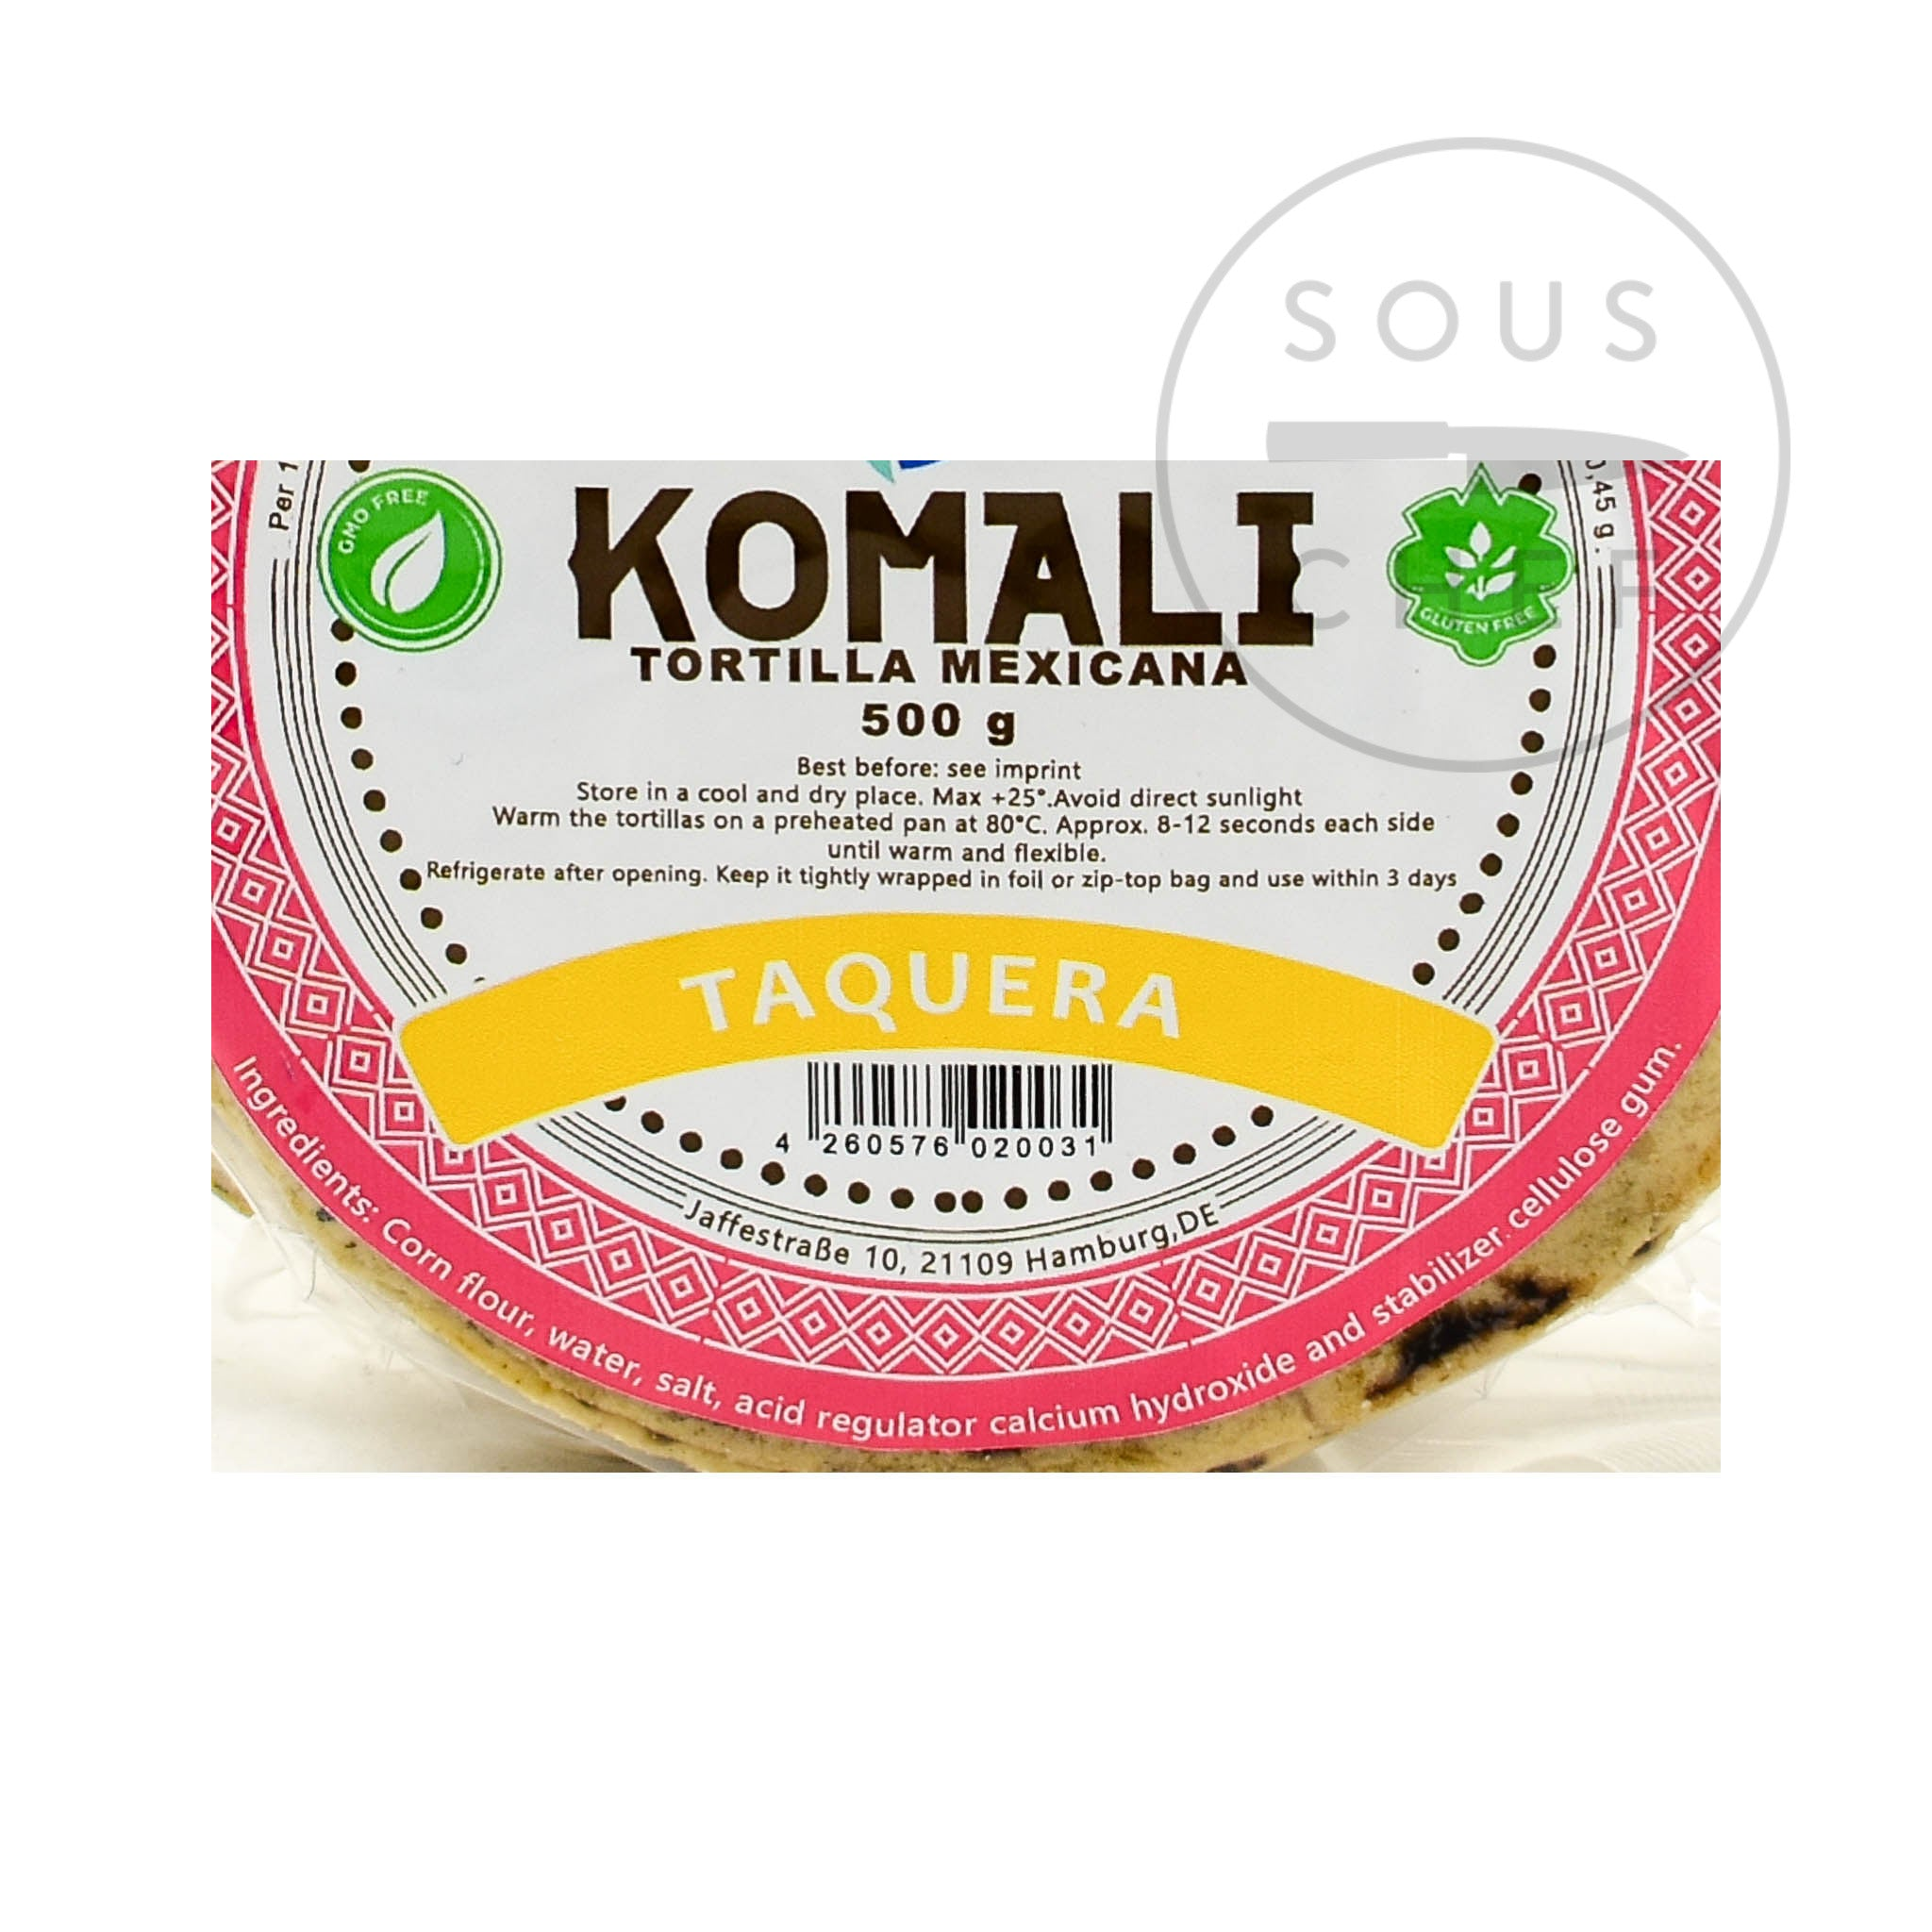 Komali Tortilla Taquera 12cm 500g Ingredients Nutritional Information Mexican Food and Cooking